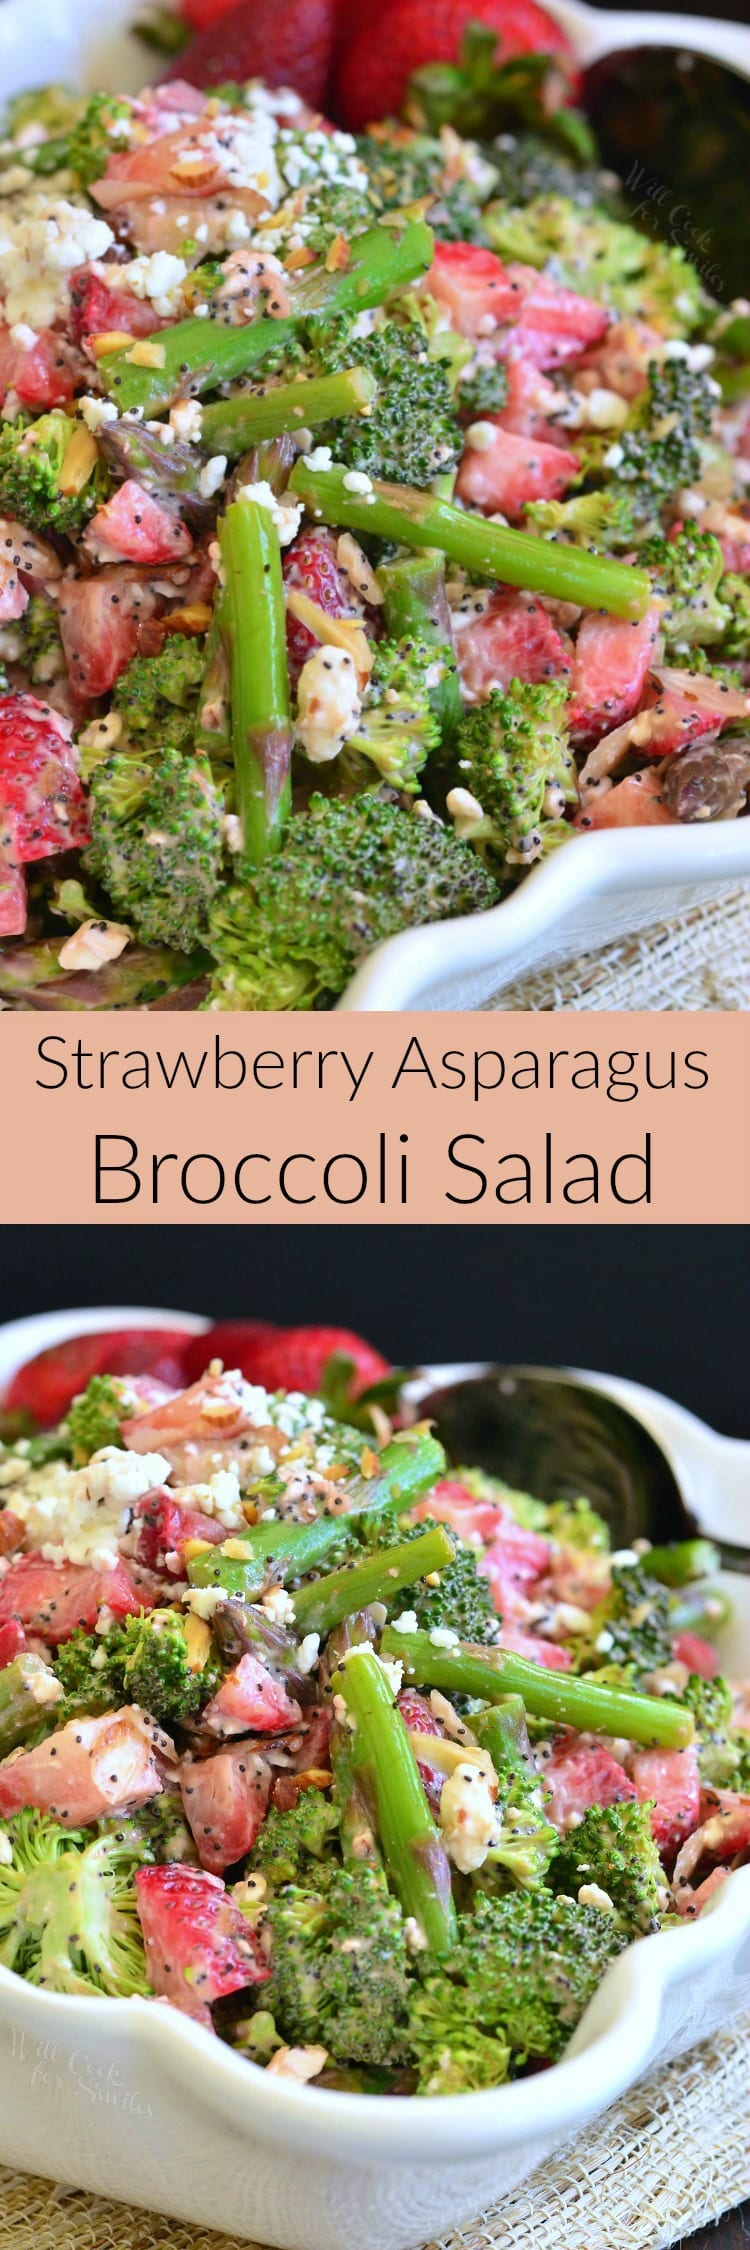 Strawberry Asparagus Broccoli Salad. This fruity broccoli salad is made with asparagus, strawberries, feta cheese, crunchy almonds and dressed with a creamy balsamic salad.